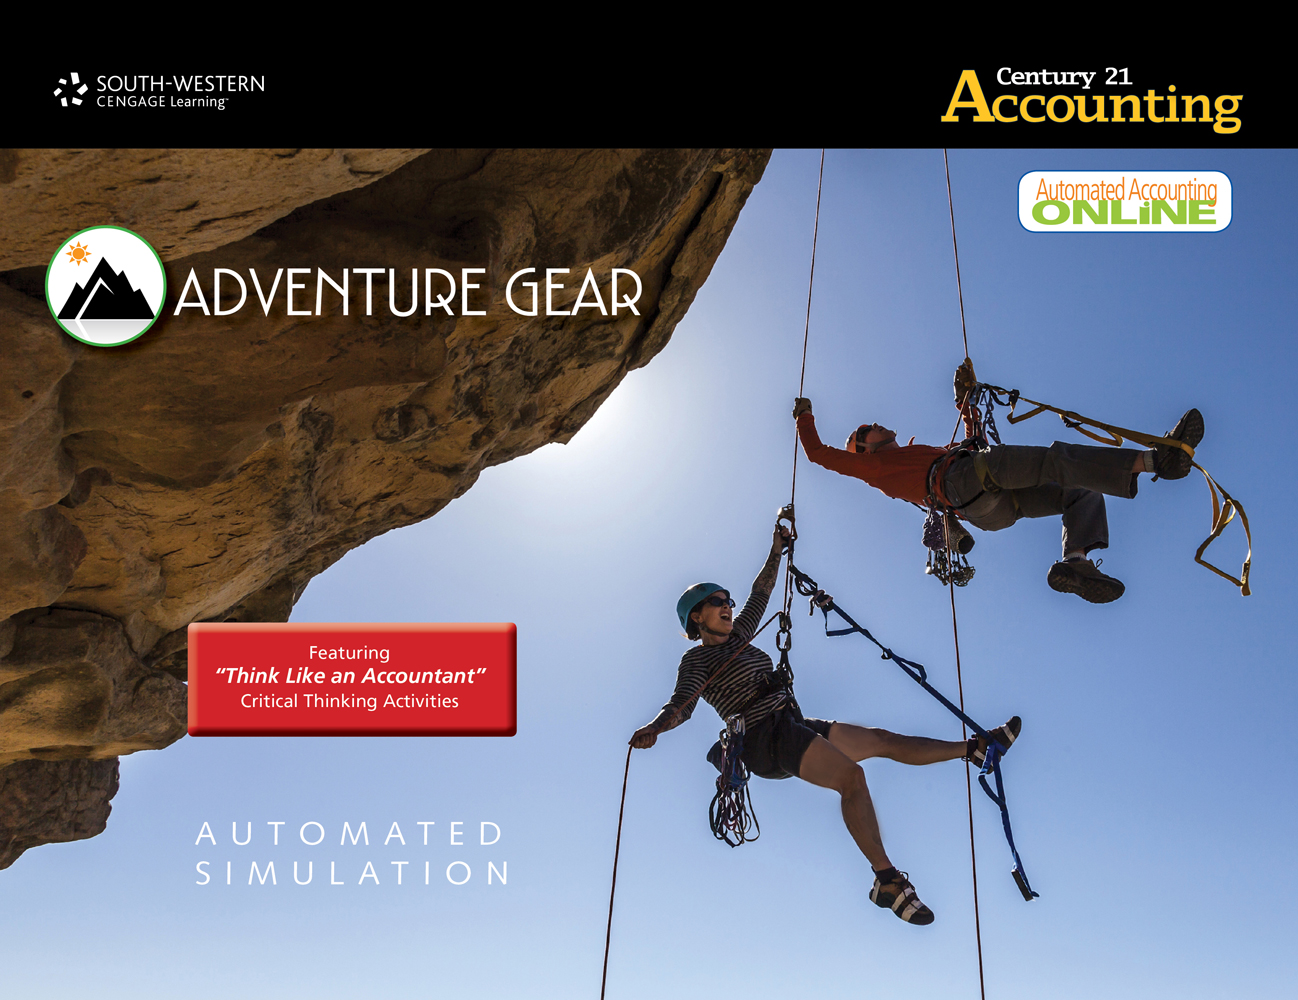 Adventure Gear Automated Simulation with Automated Accounting Online - 9781133588337